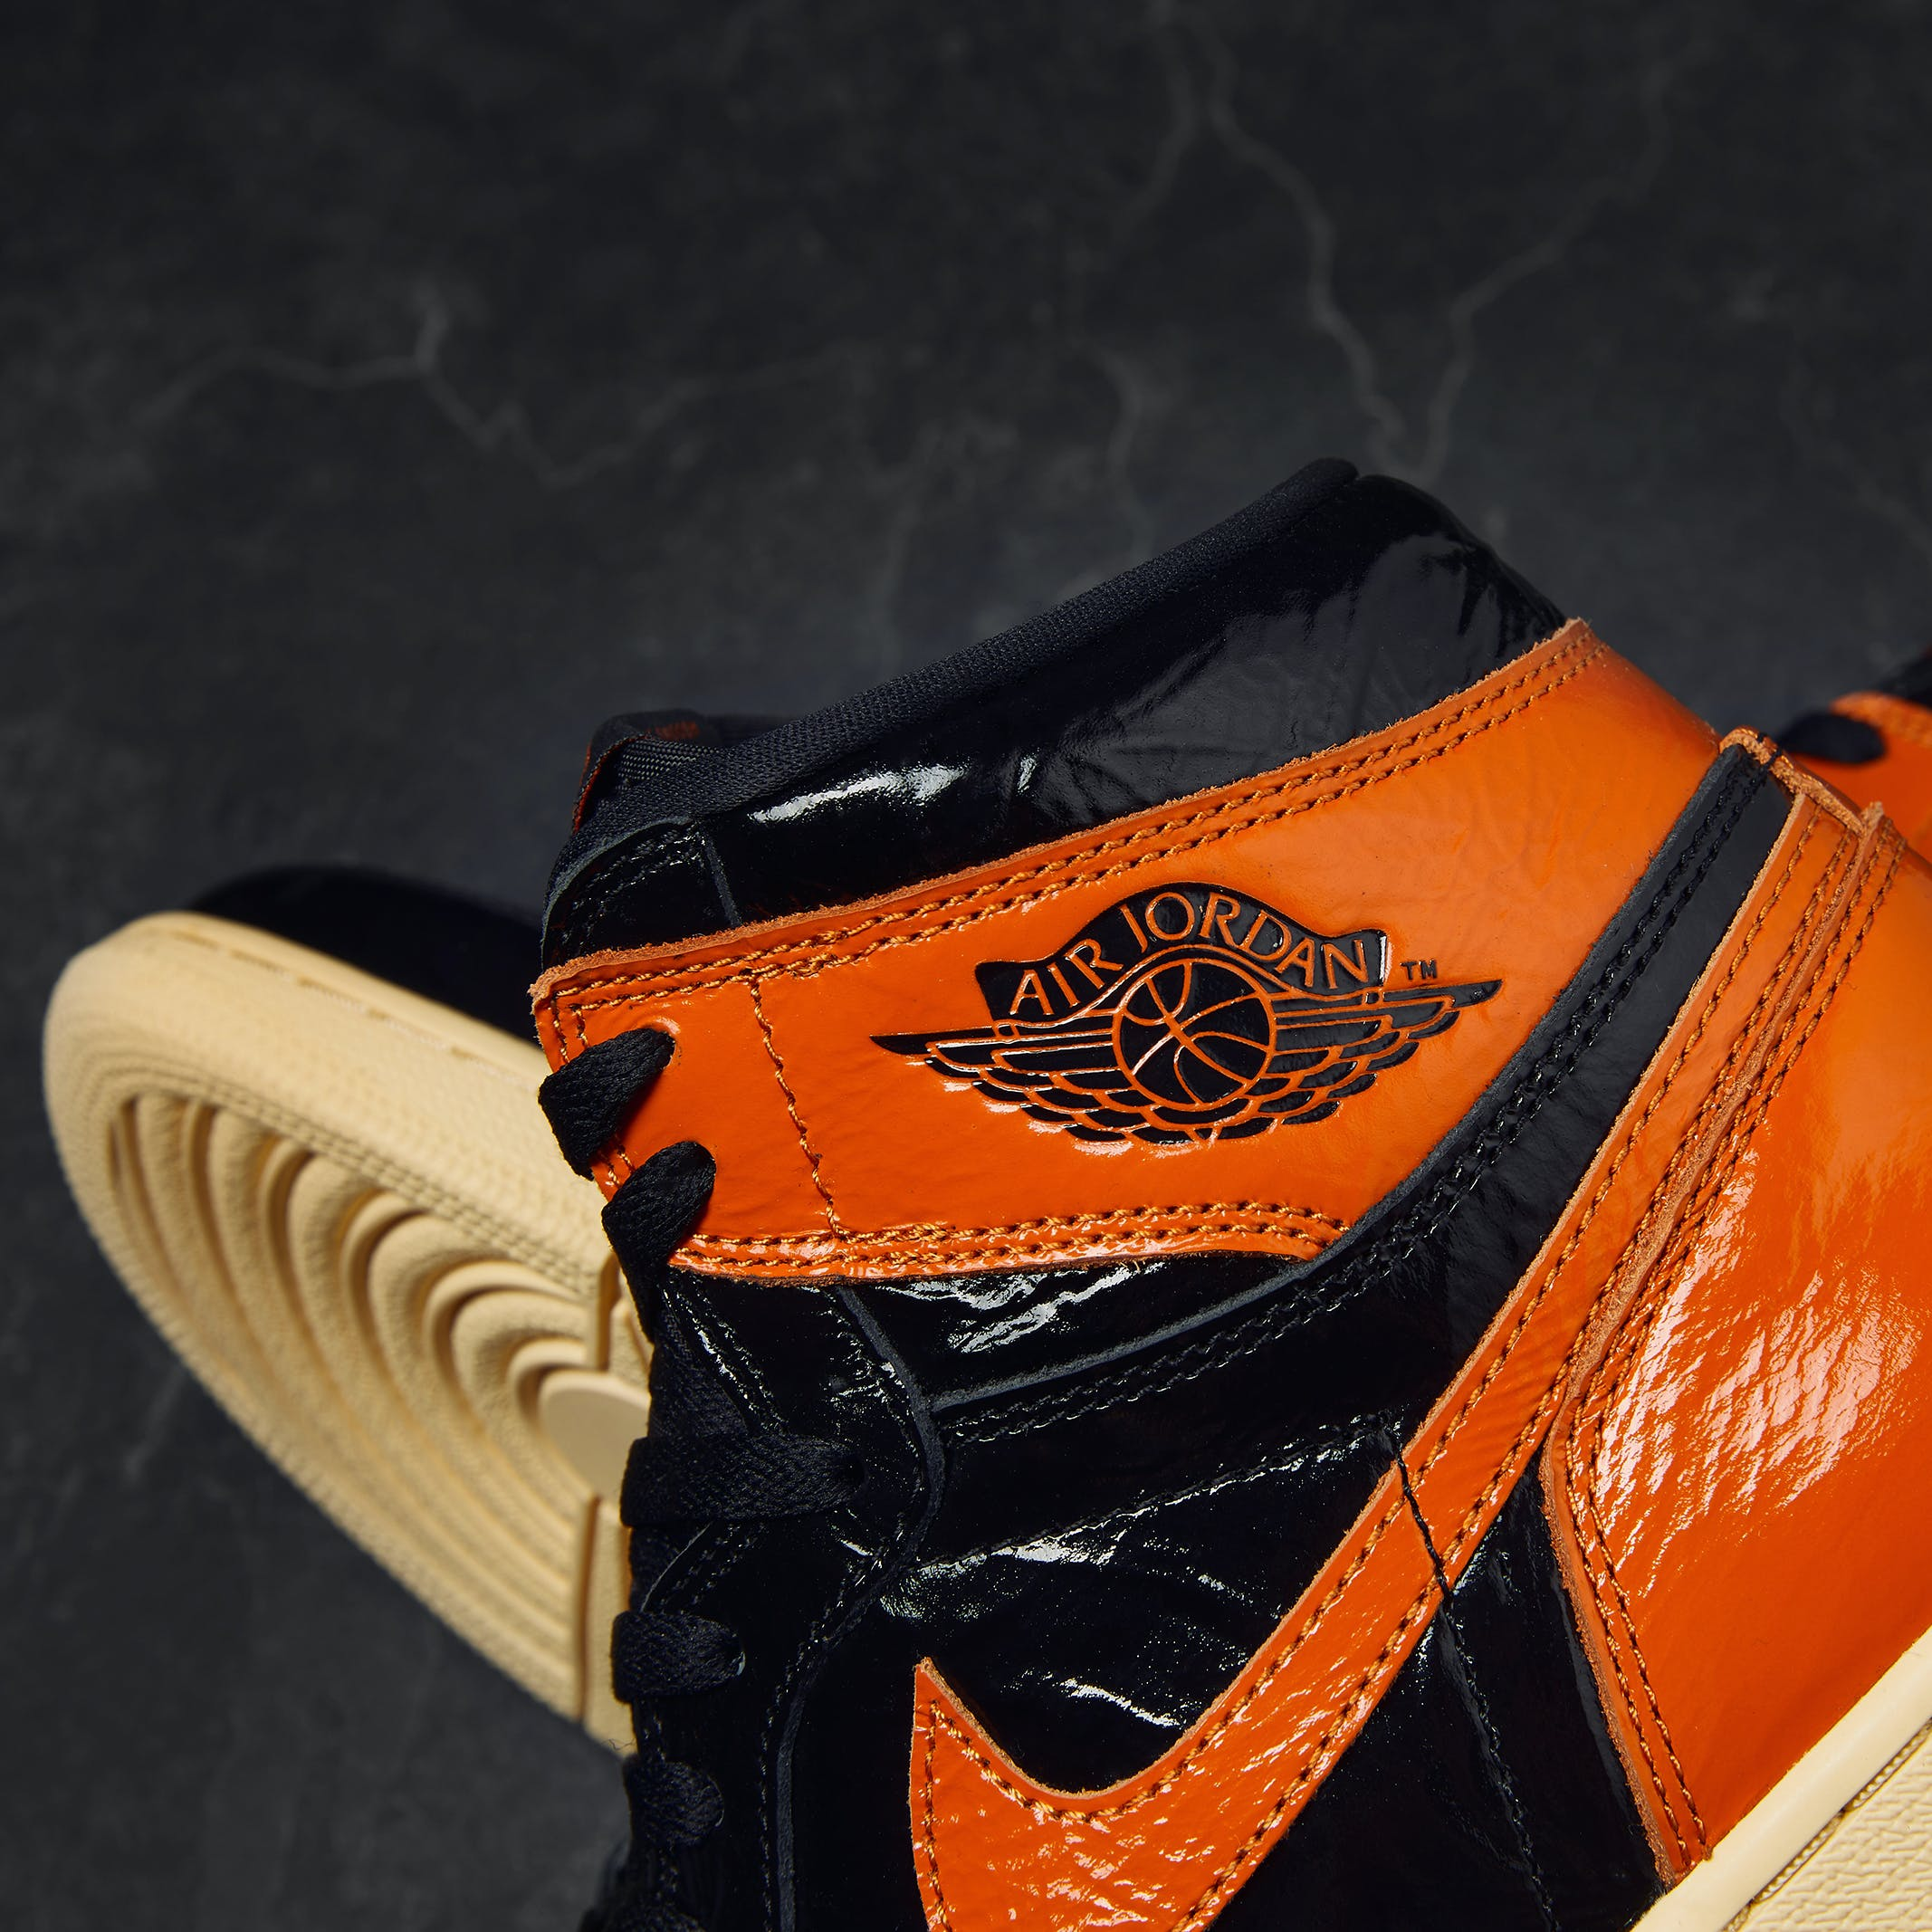 Air Jordan 1 Retro High OG 'Shattered Backboard 3.0' - 555088-028